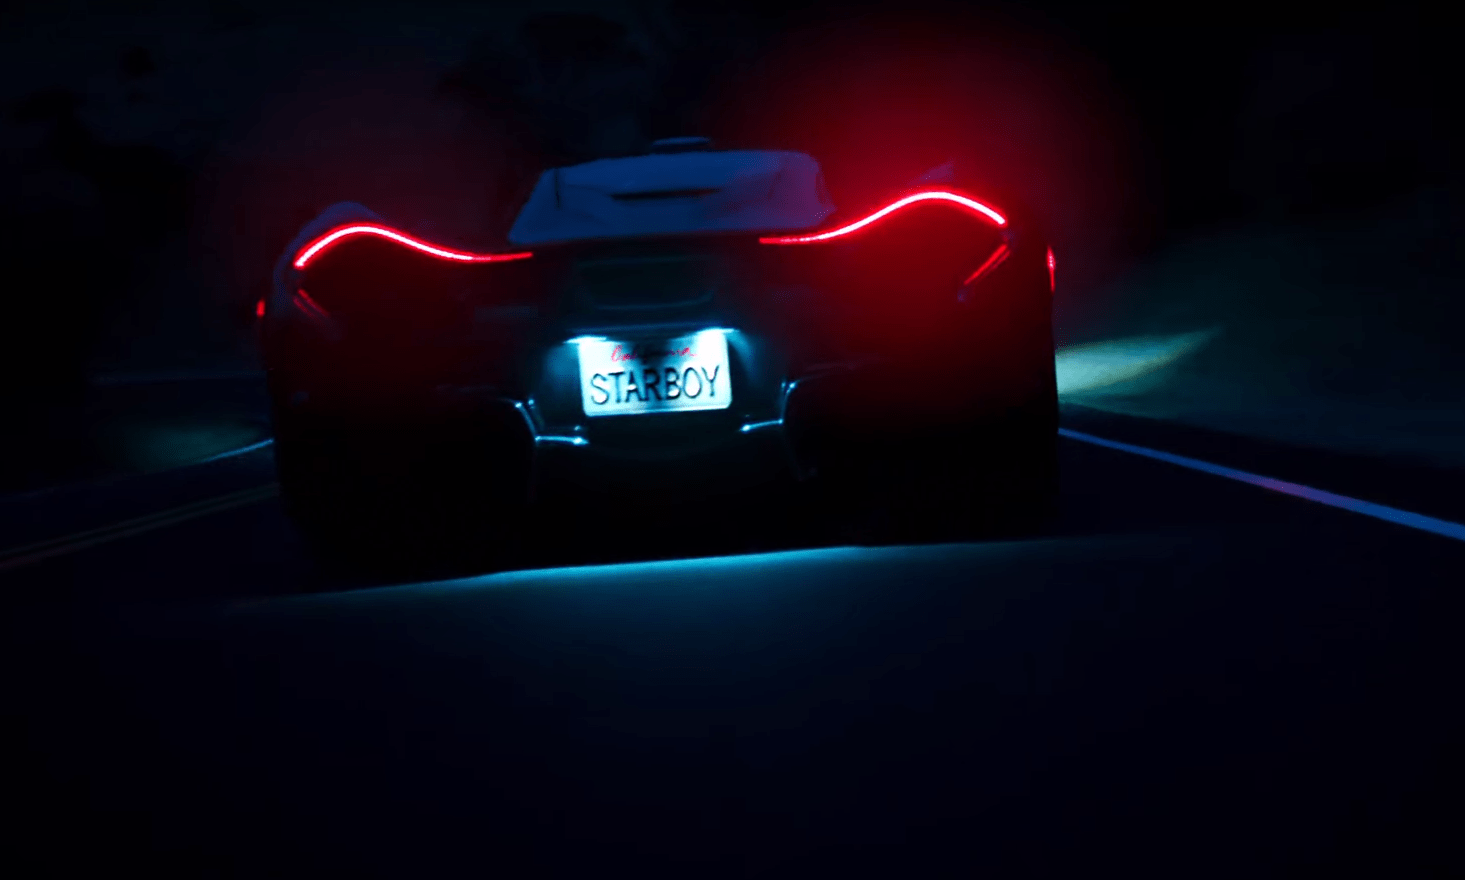 Nova Car Wallpaper Starboy Drives A Mclaren P1